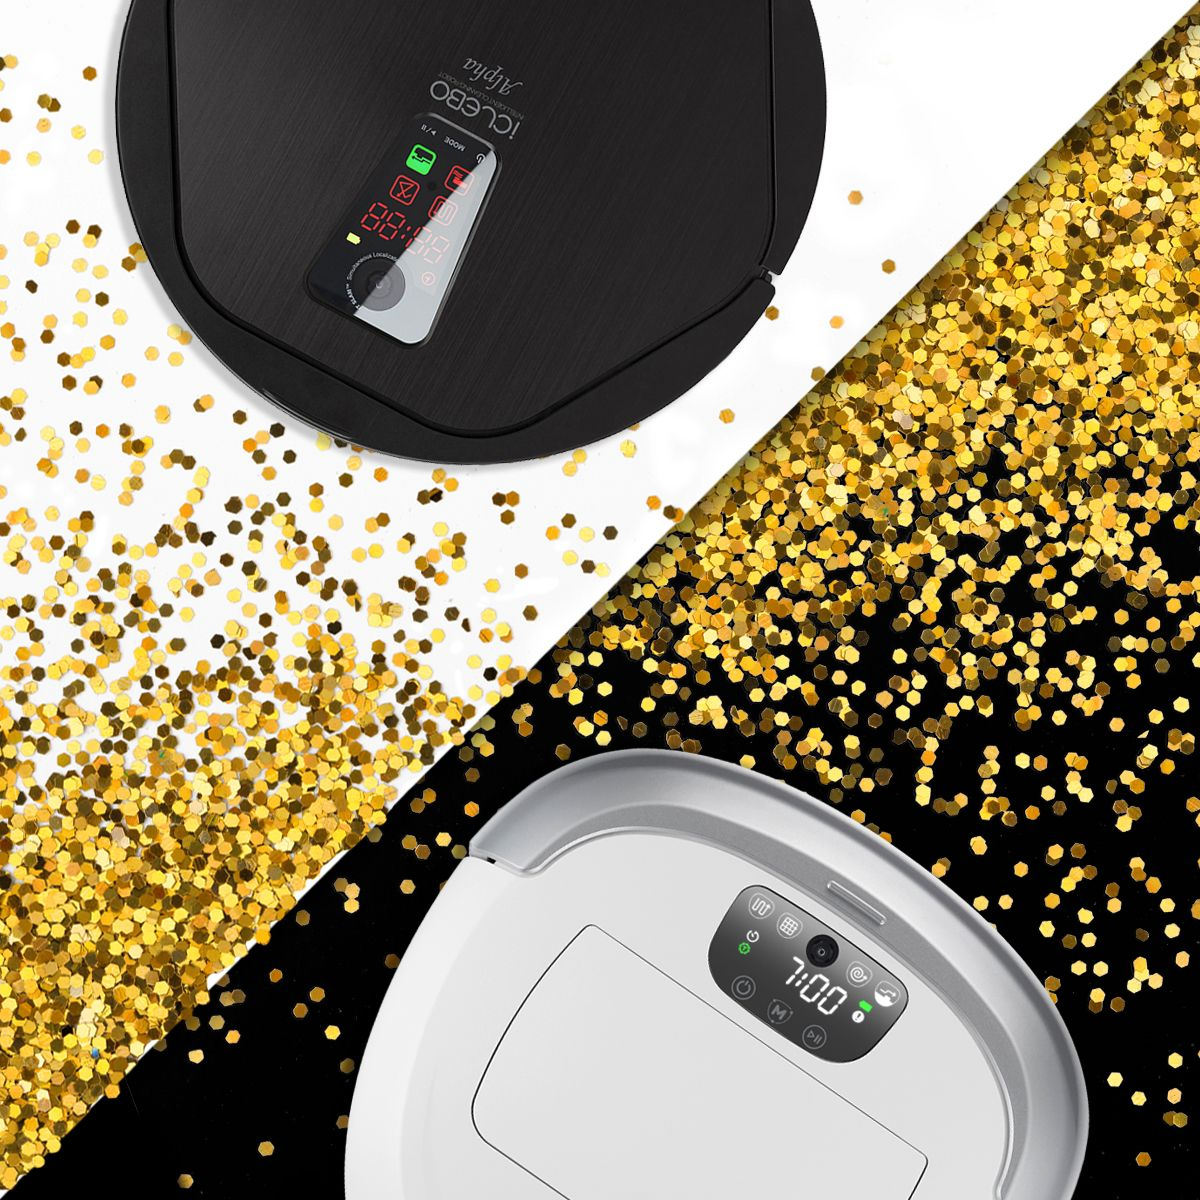 Pin by iClebo on iClebo Products | Robot vacuum, Bathroom